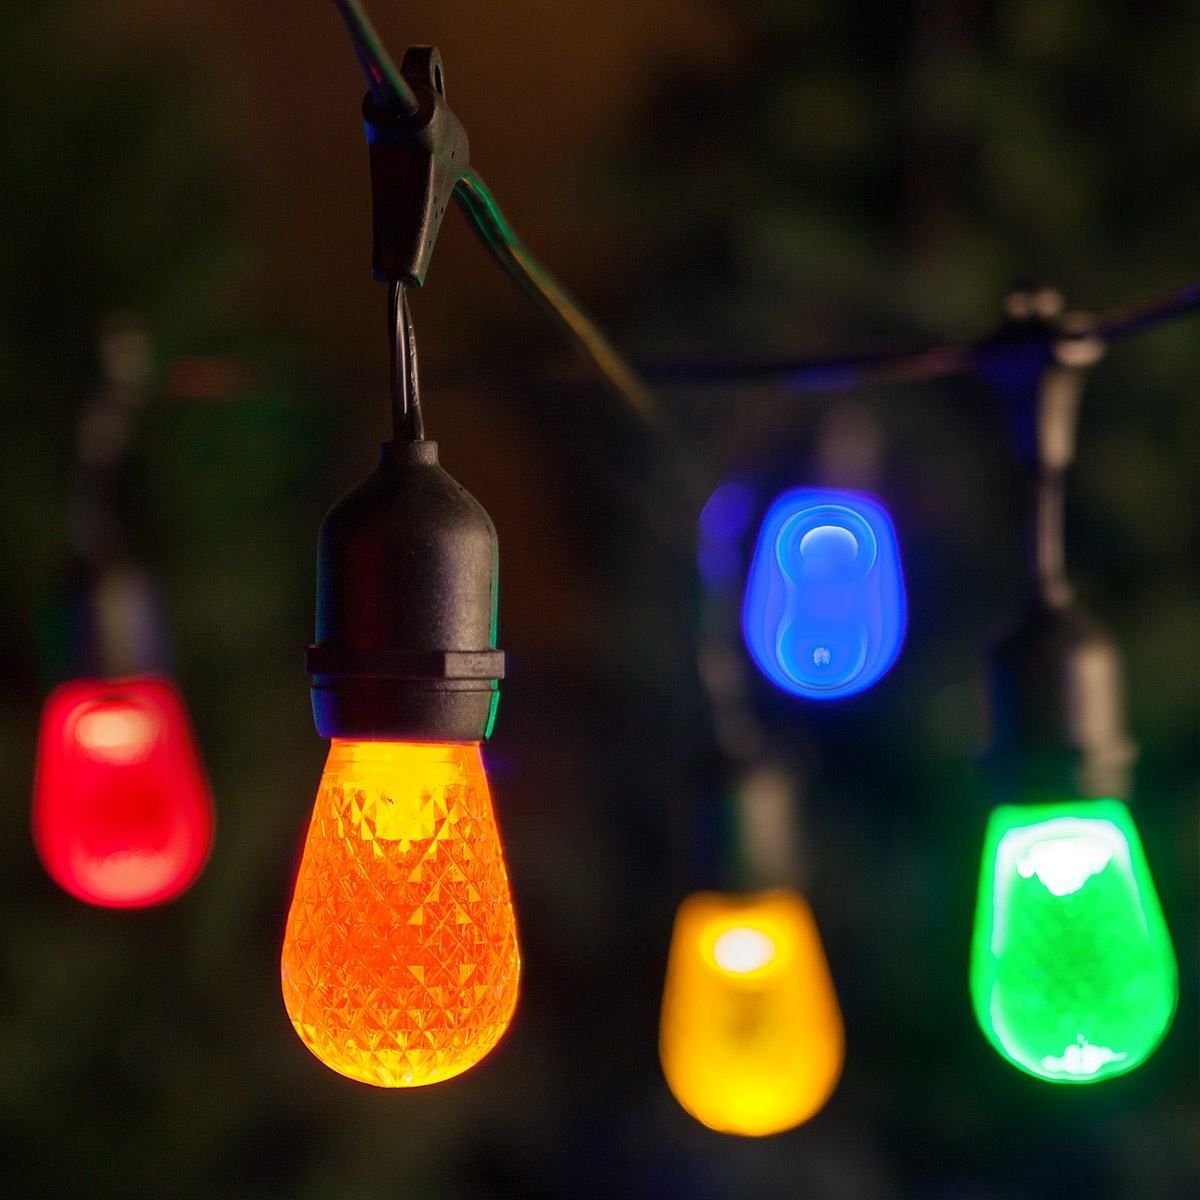 Decorative Battery Operated Lights